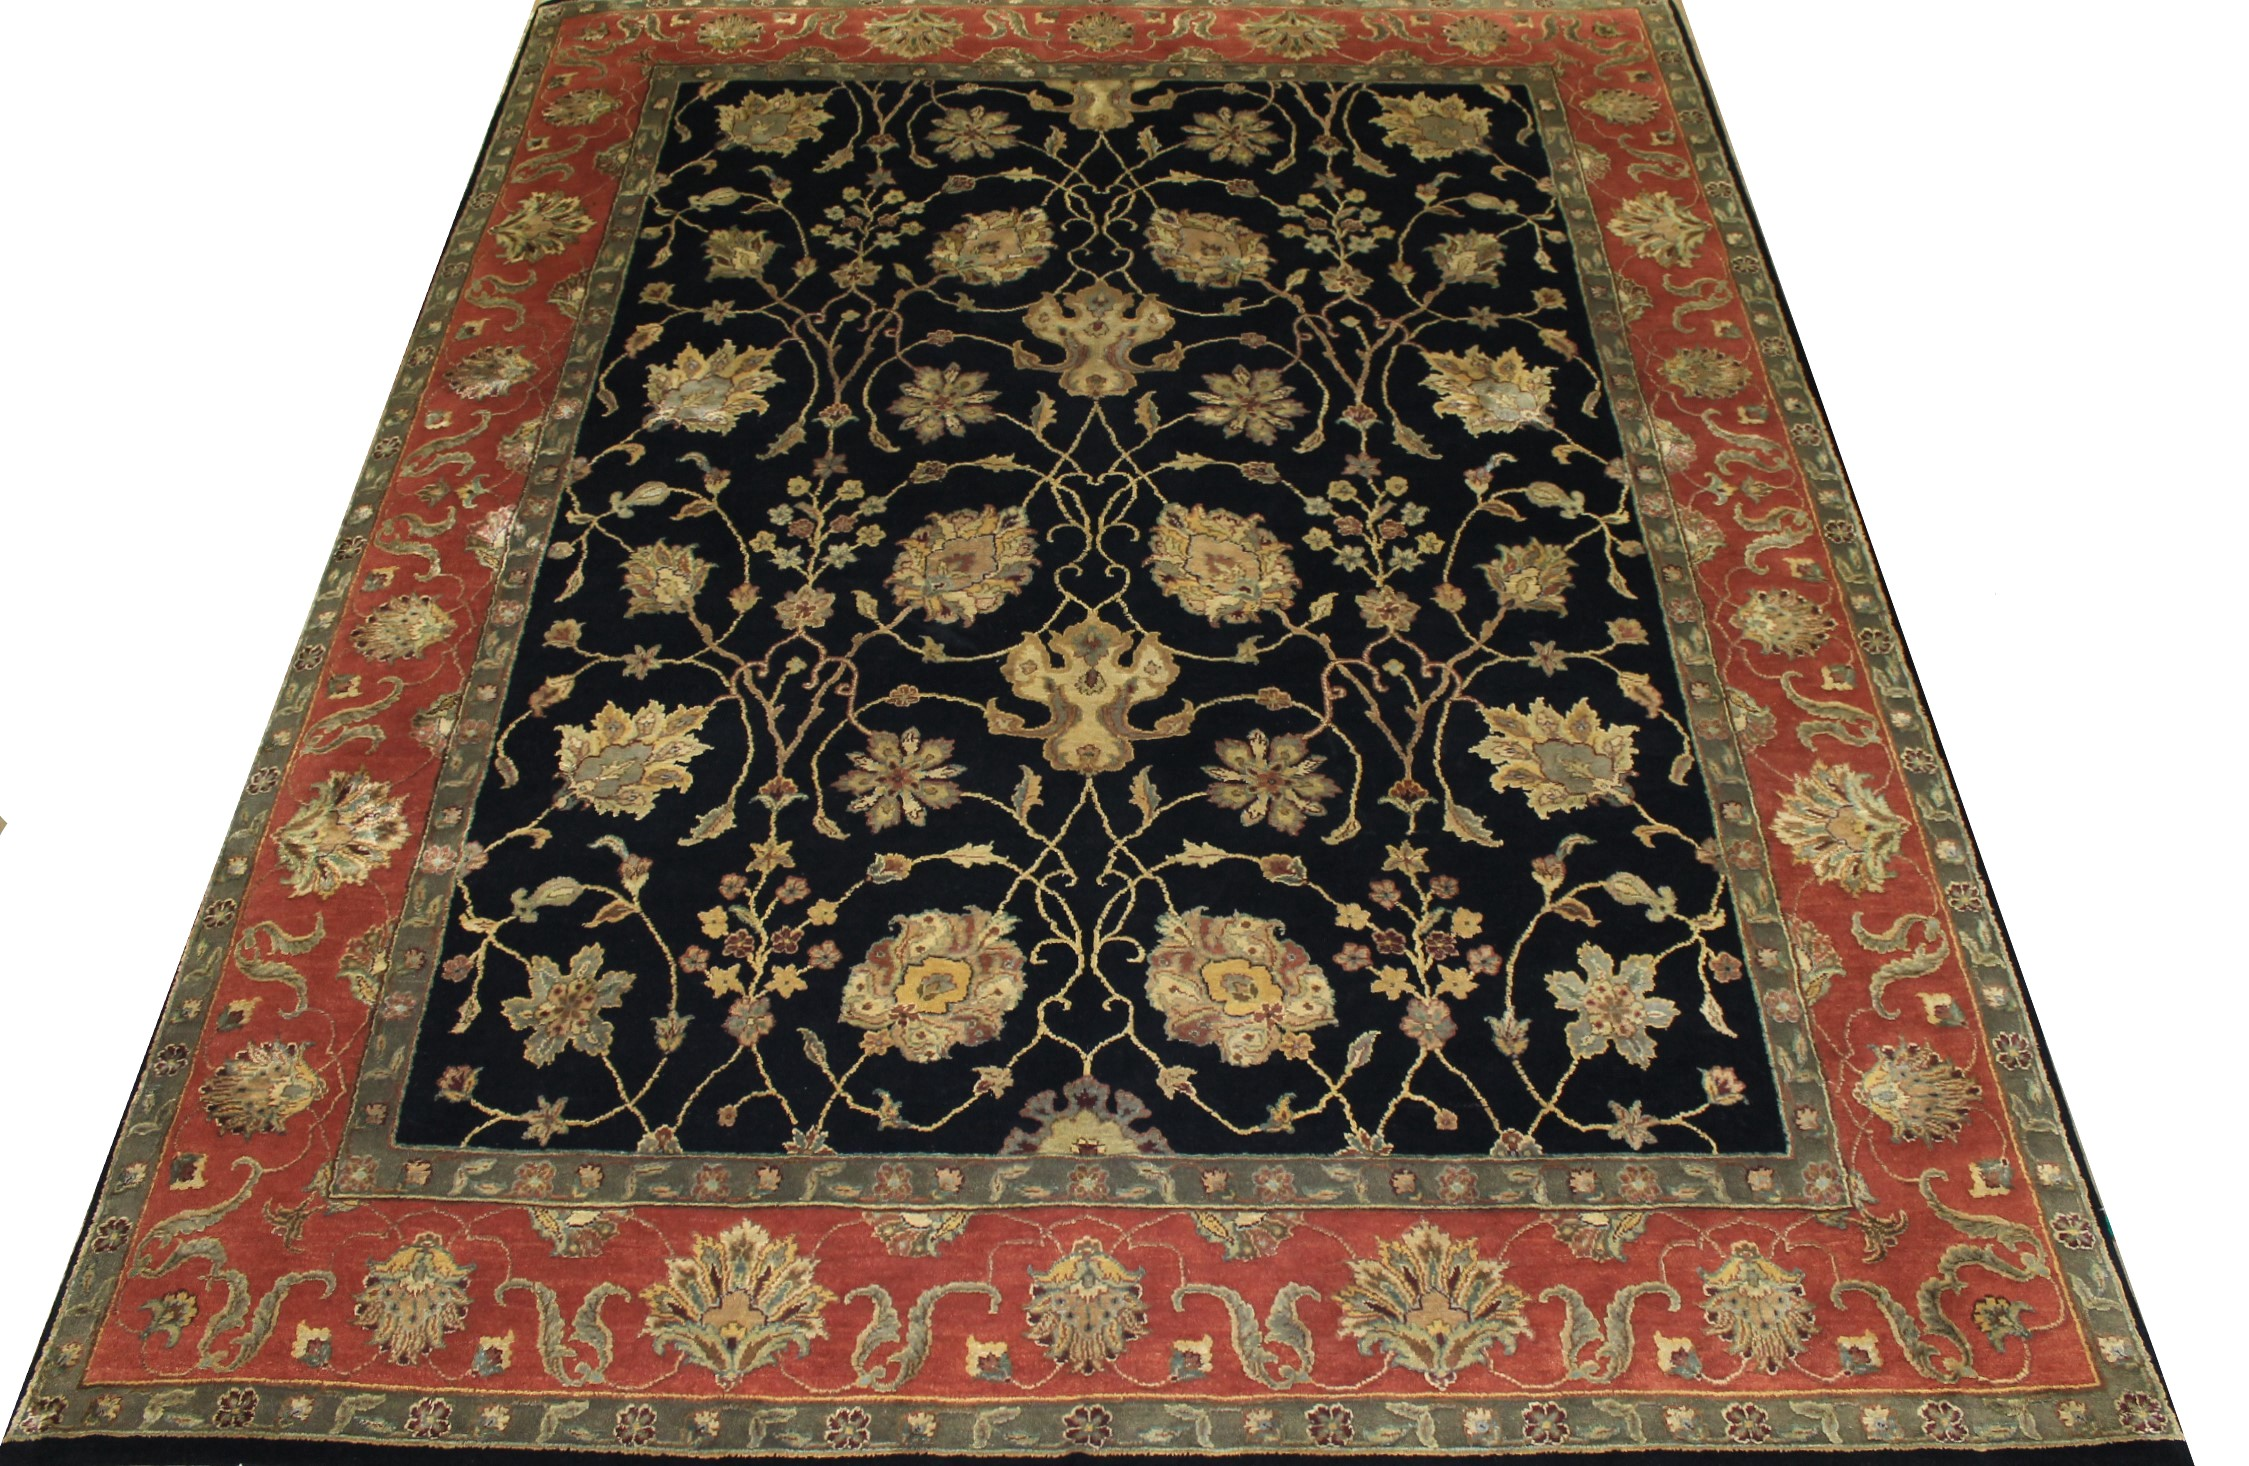 8x10 Silk Flower Hand Knotted Wool Area Rug - MR11750